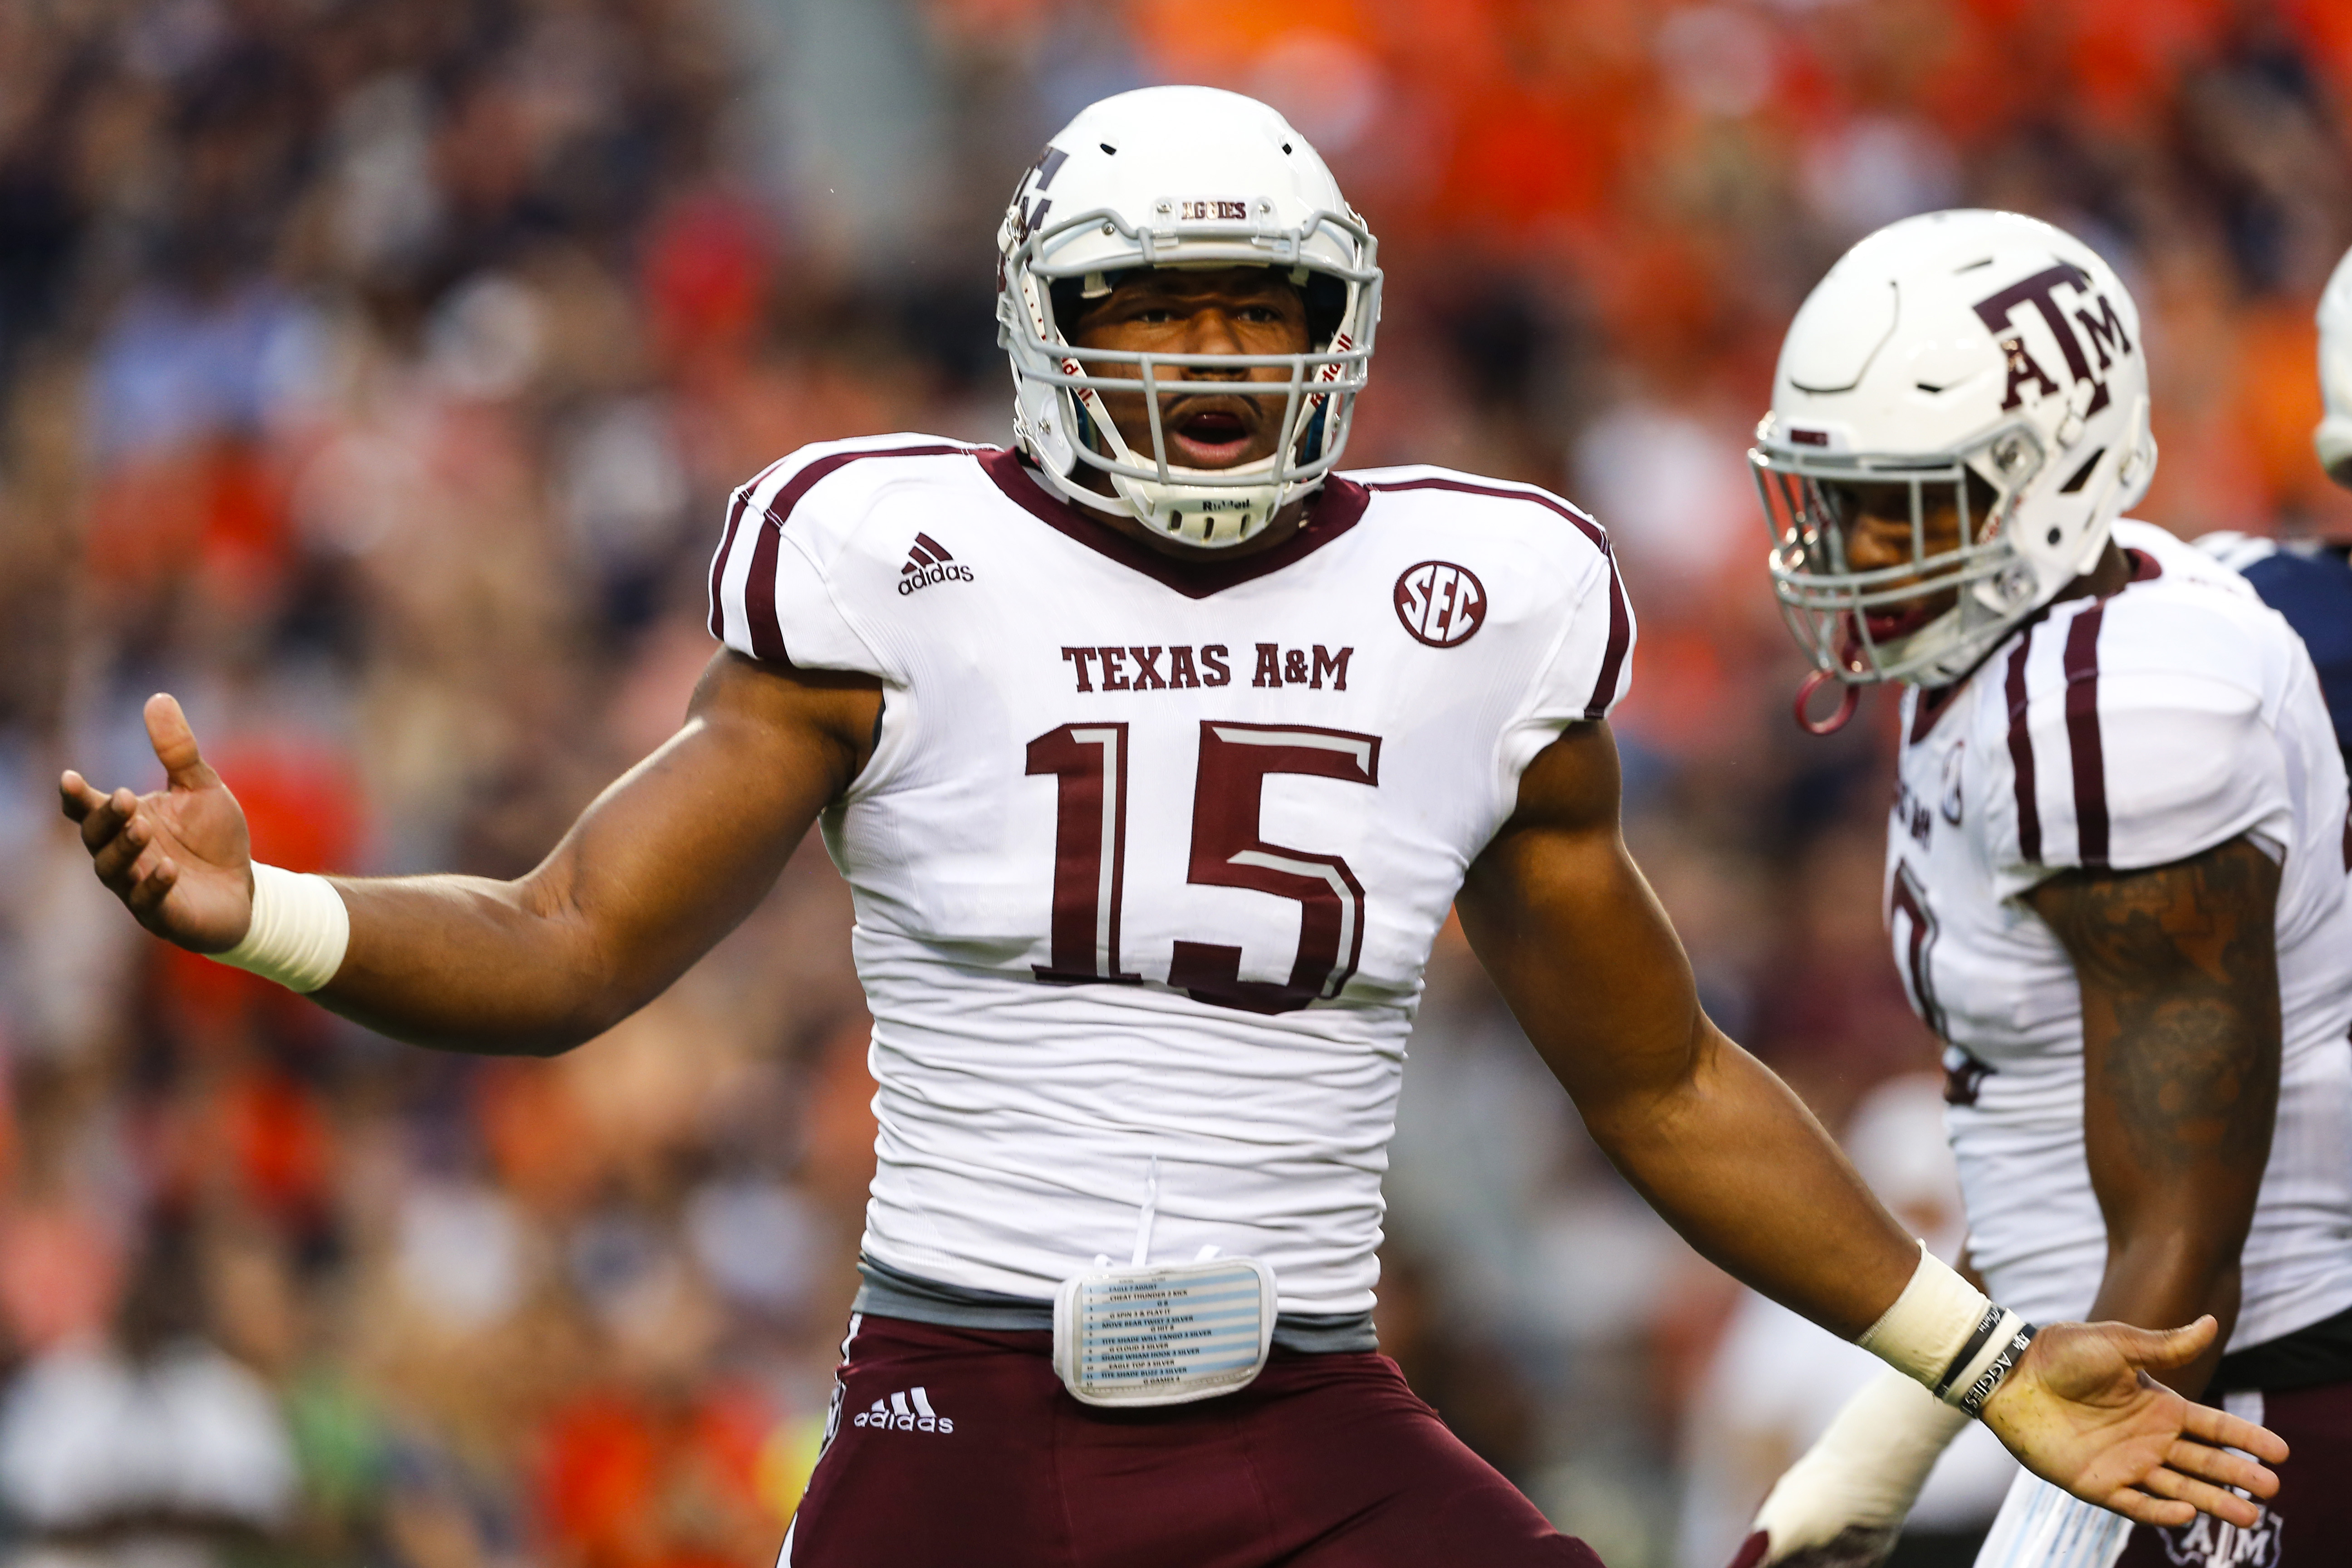 Defensive lineman Myles Garrett of Texas A&M celebrates after a sack. (Photo by Butch Dill/Getty Images)